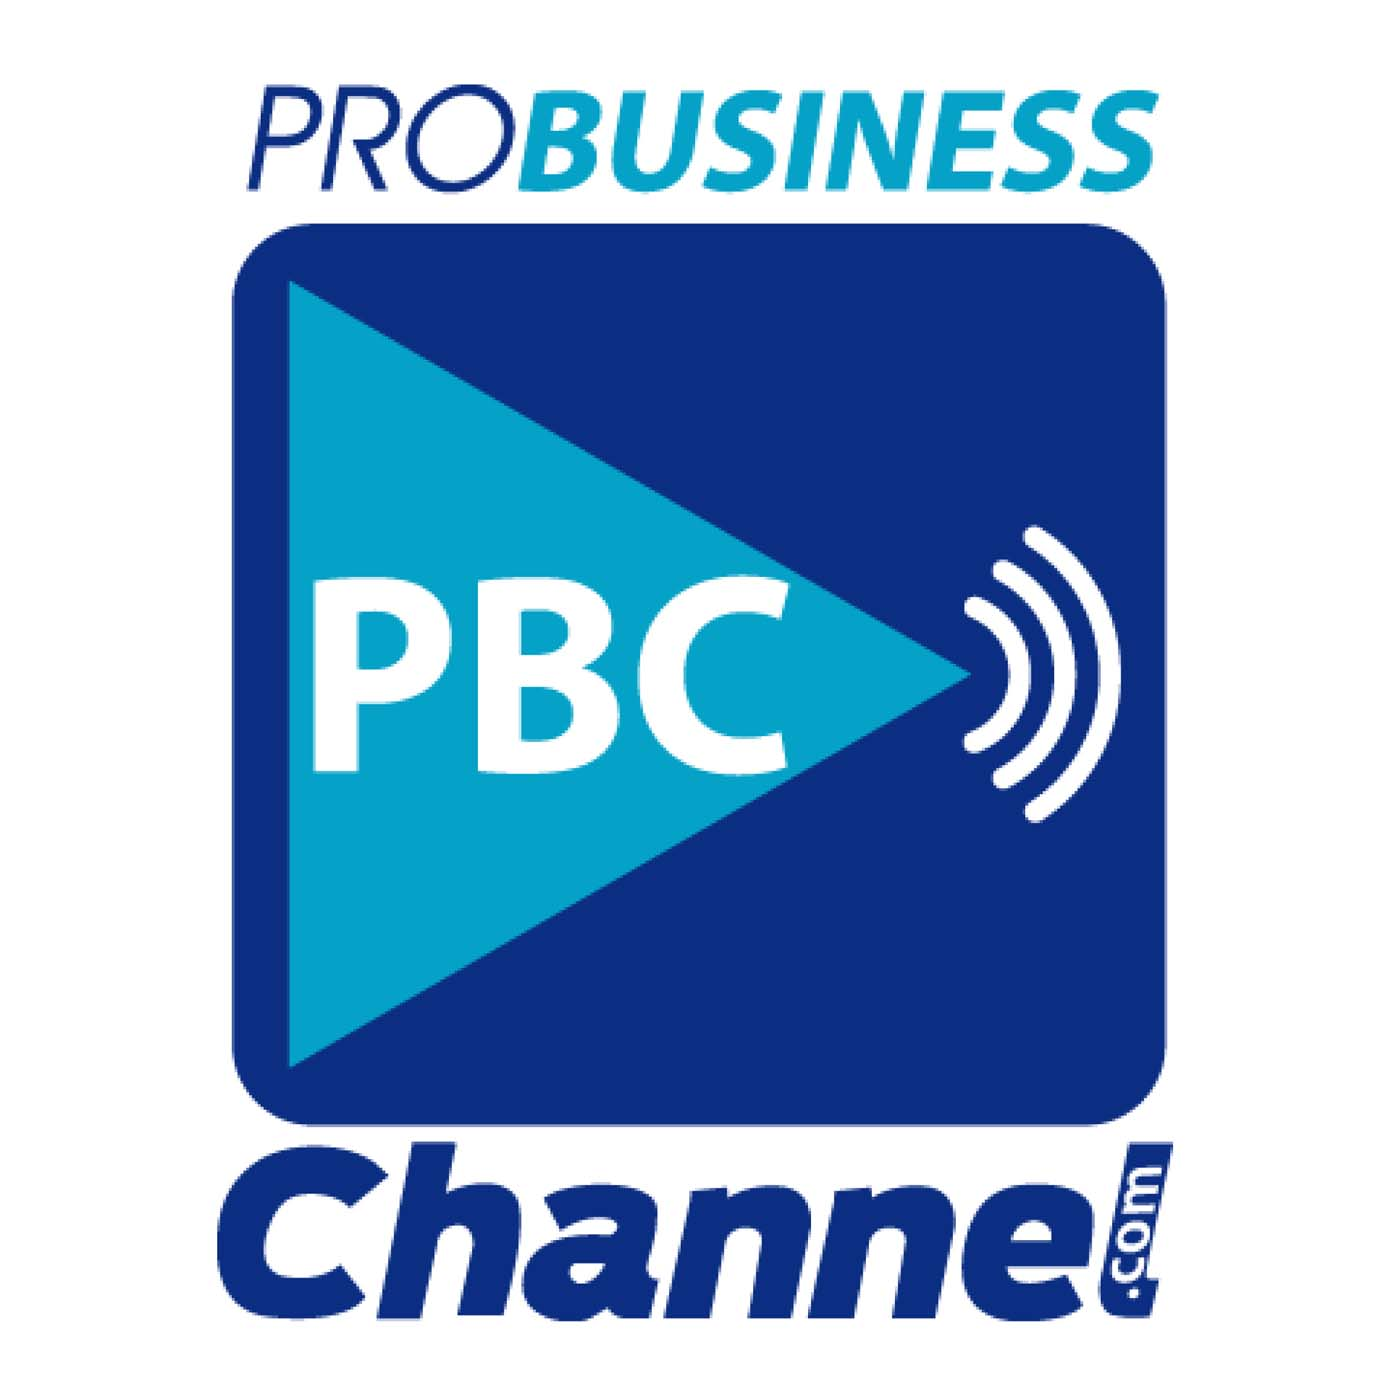 Pro Business Channel Gift Store